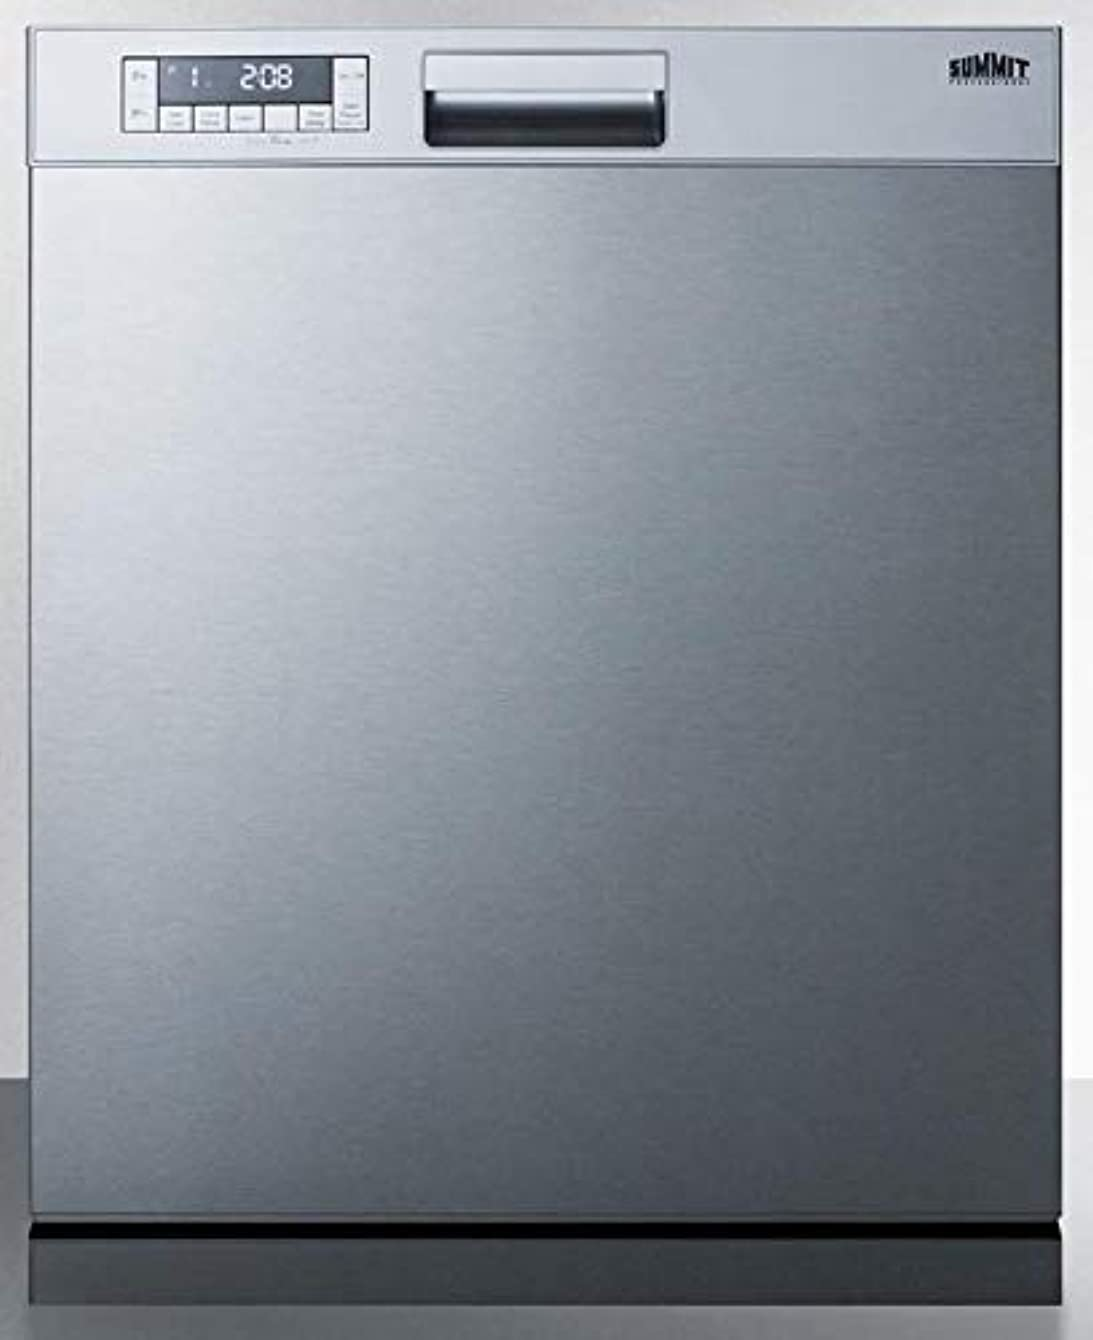 Summit DW2435SSADA 24 Inch Built In Fully Integrated Dishwasher in Stainless Steel